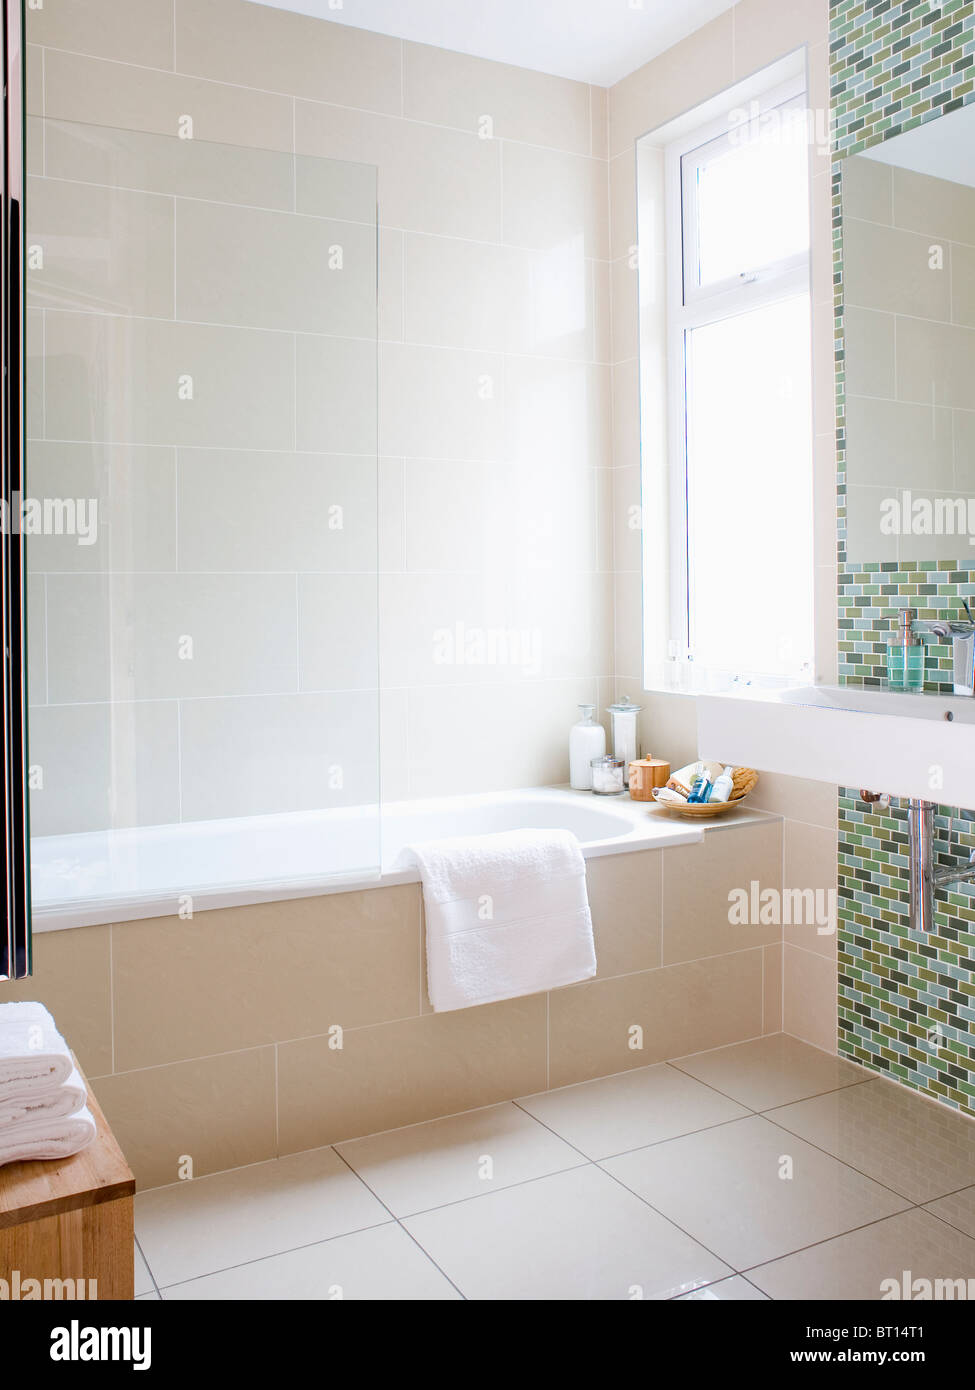 Glass shower screen on bath in modern cream tiled bathroom Stock ...